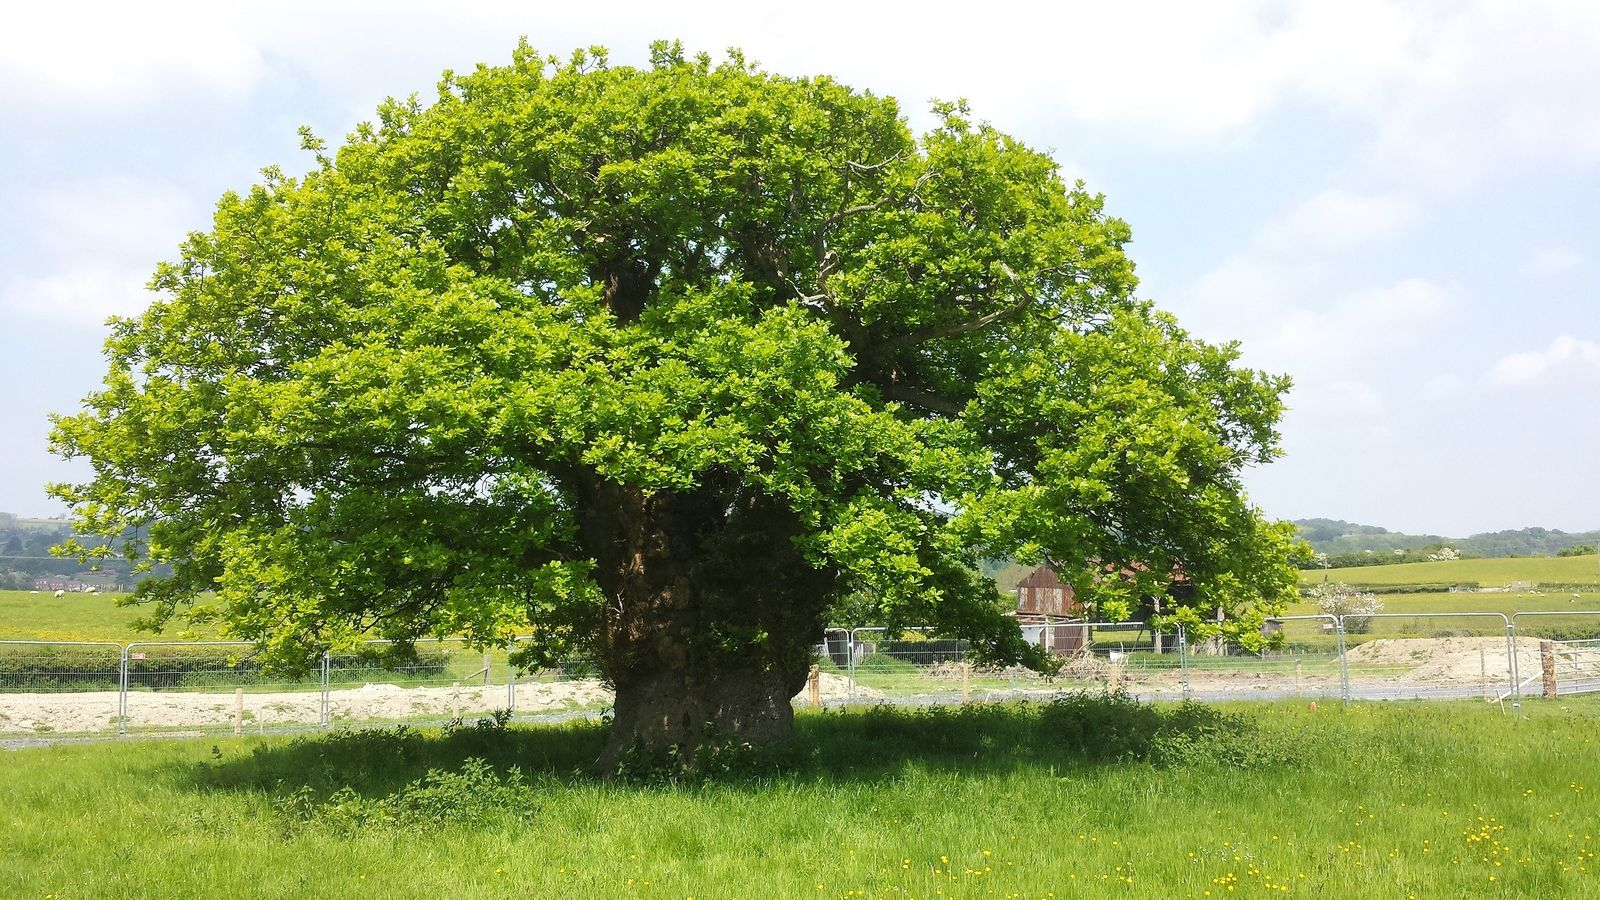 The Brimmon Oak in Newtown, Wales, was the UK's Tree of the Year 2016. A new ...